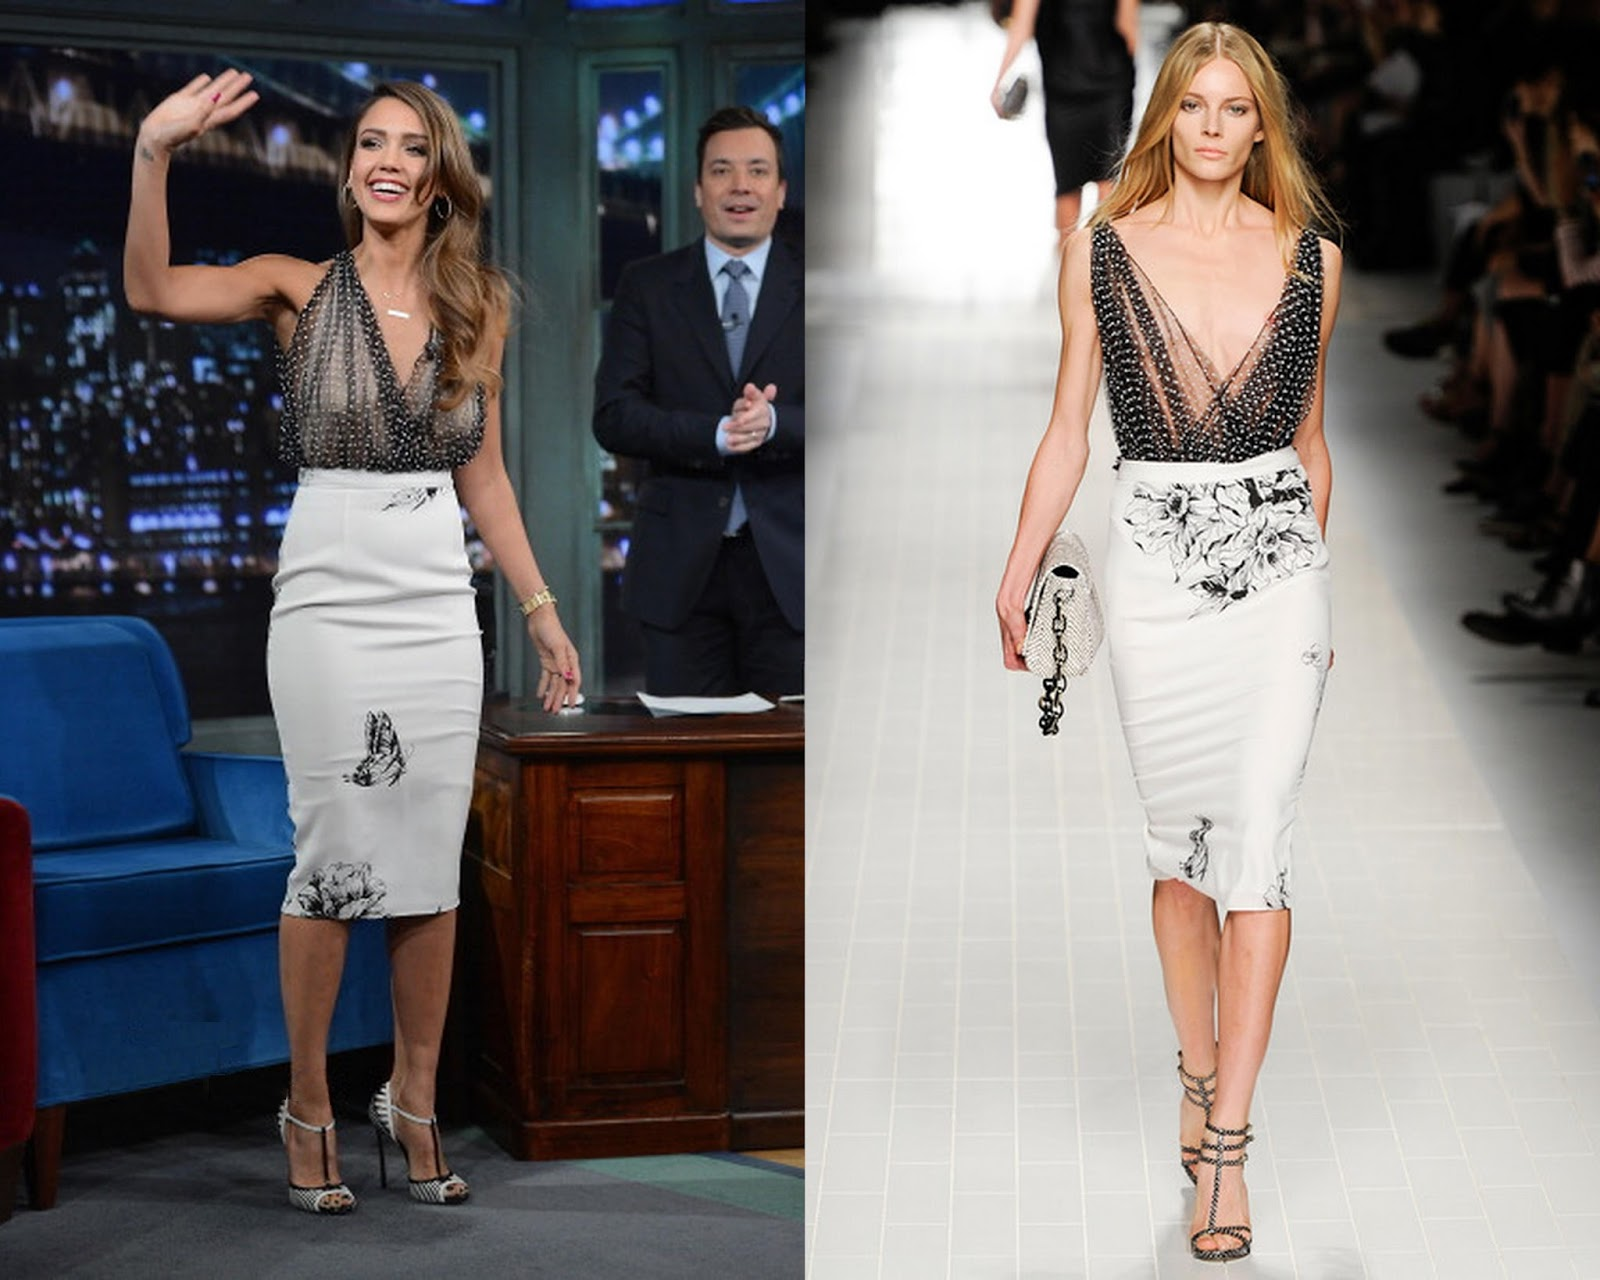 Late Night with Jimmy Fallon - Jessica Alba in Blumarine